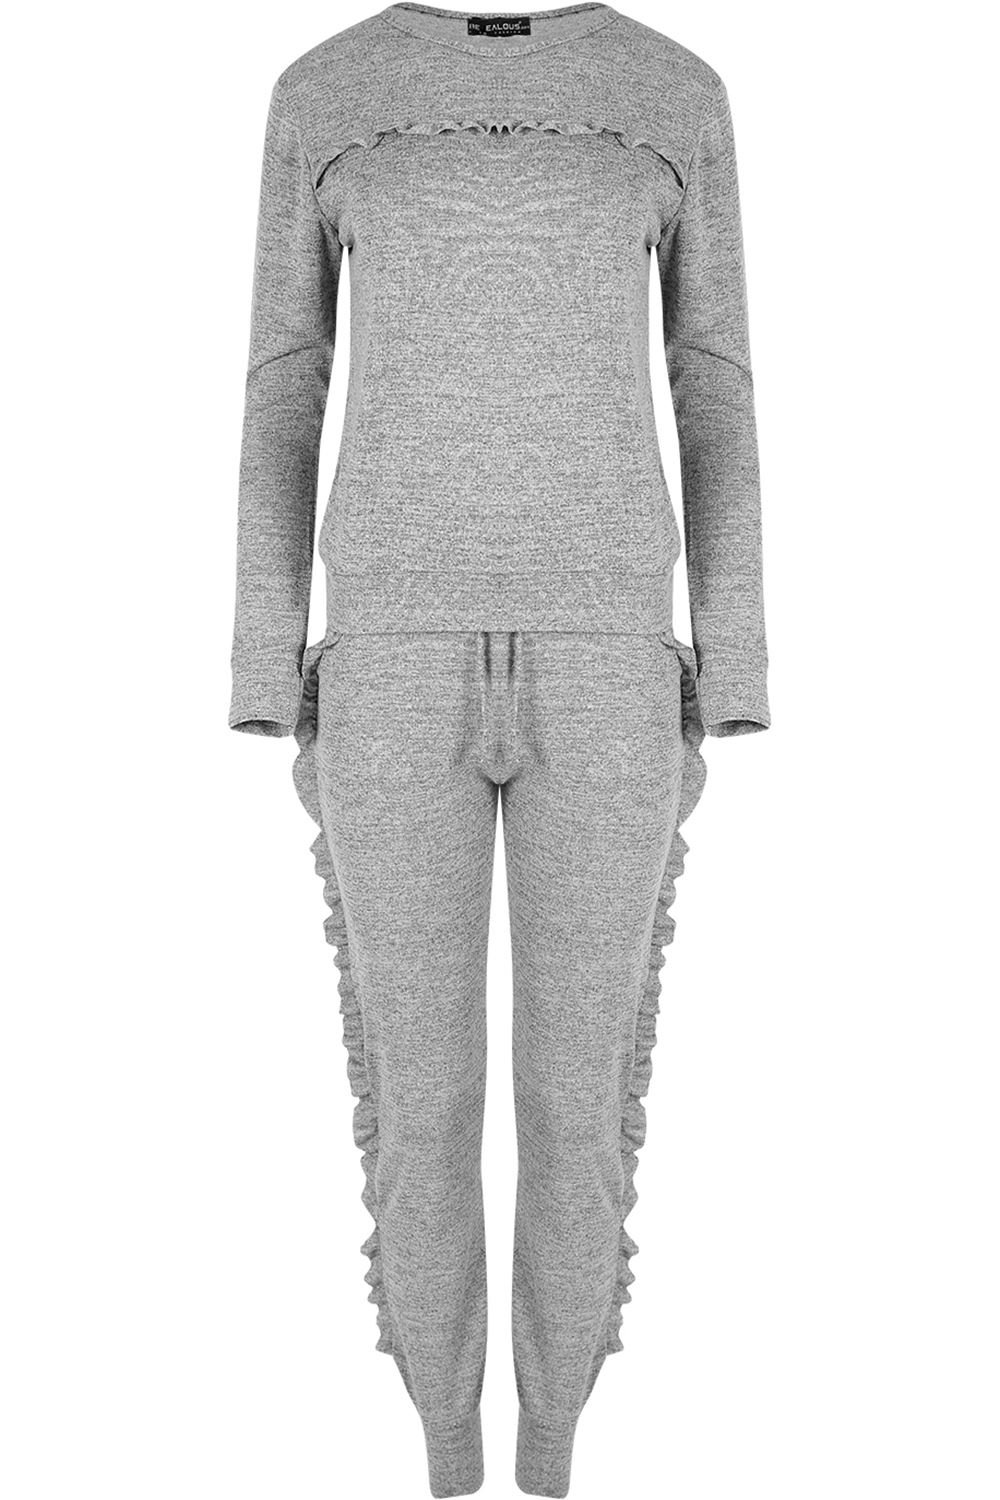 Fashion Star Oops Outlet Womens MARL Peplum Ruffle Frill Jog Top Tracksuit Ladies Loungewear Bottoms Set BE JEALOUS